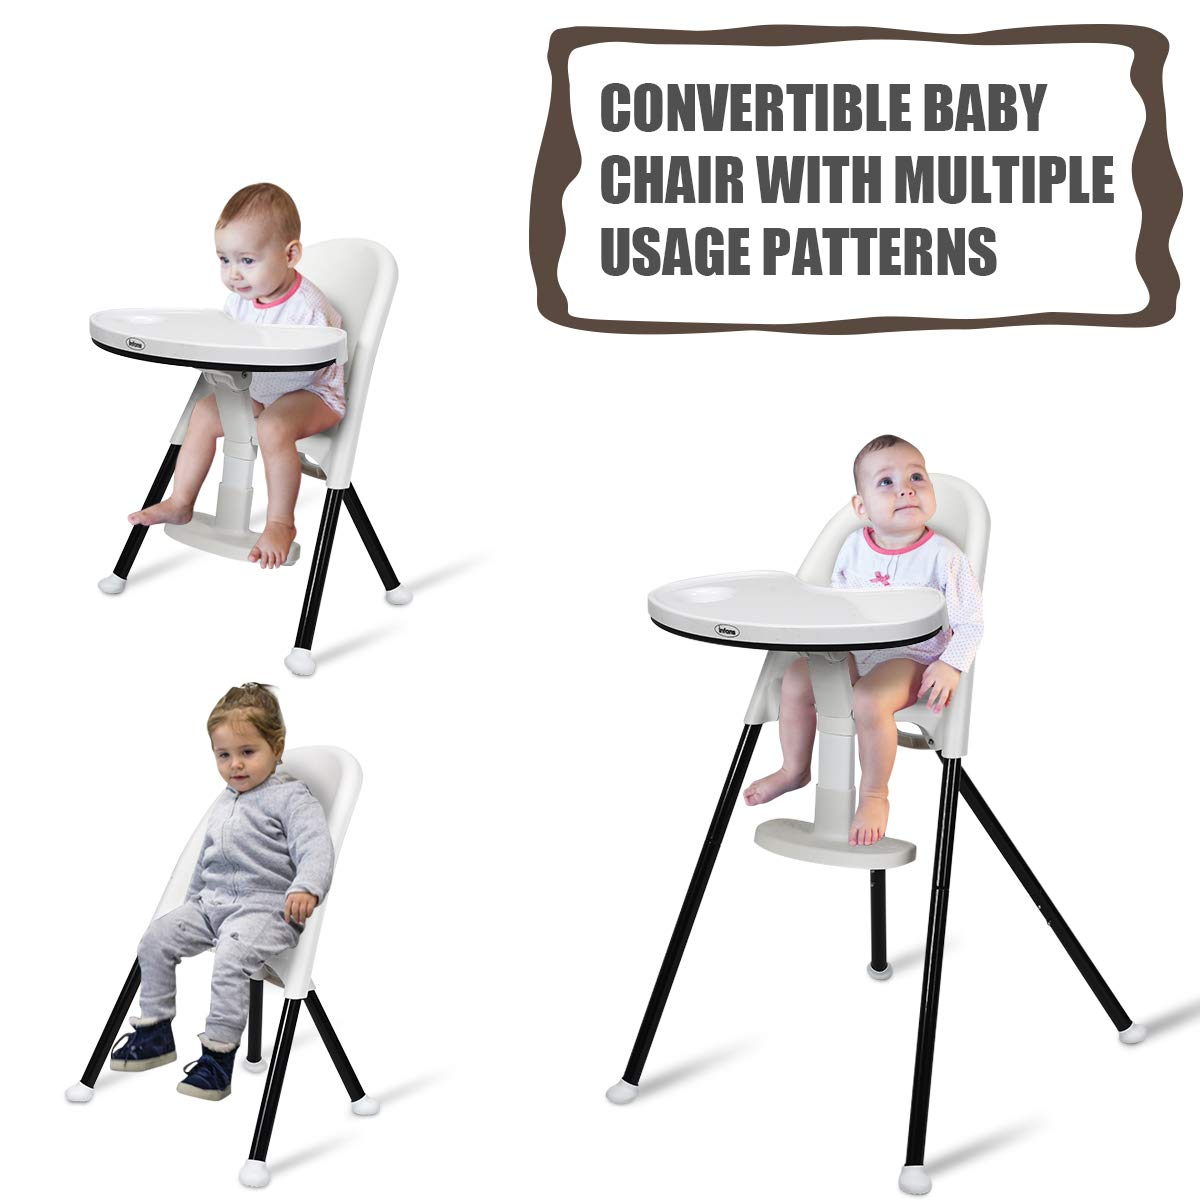 INFANS High Chair Folding 3-Point Harness Non-Slip Feet 6 Months /& up 3 in 1 Convertible Highchair with Detachable Double Tray Grey Adjustable Legs for Baby /& Toddler Adjustable Footrest